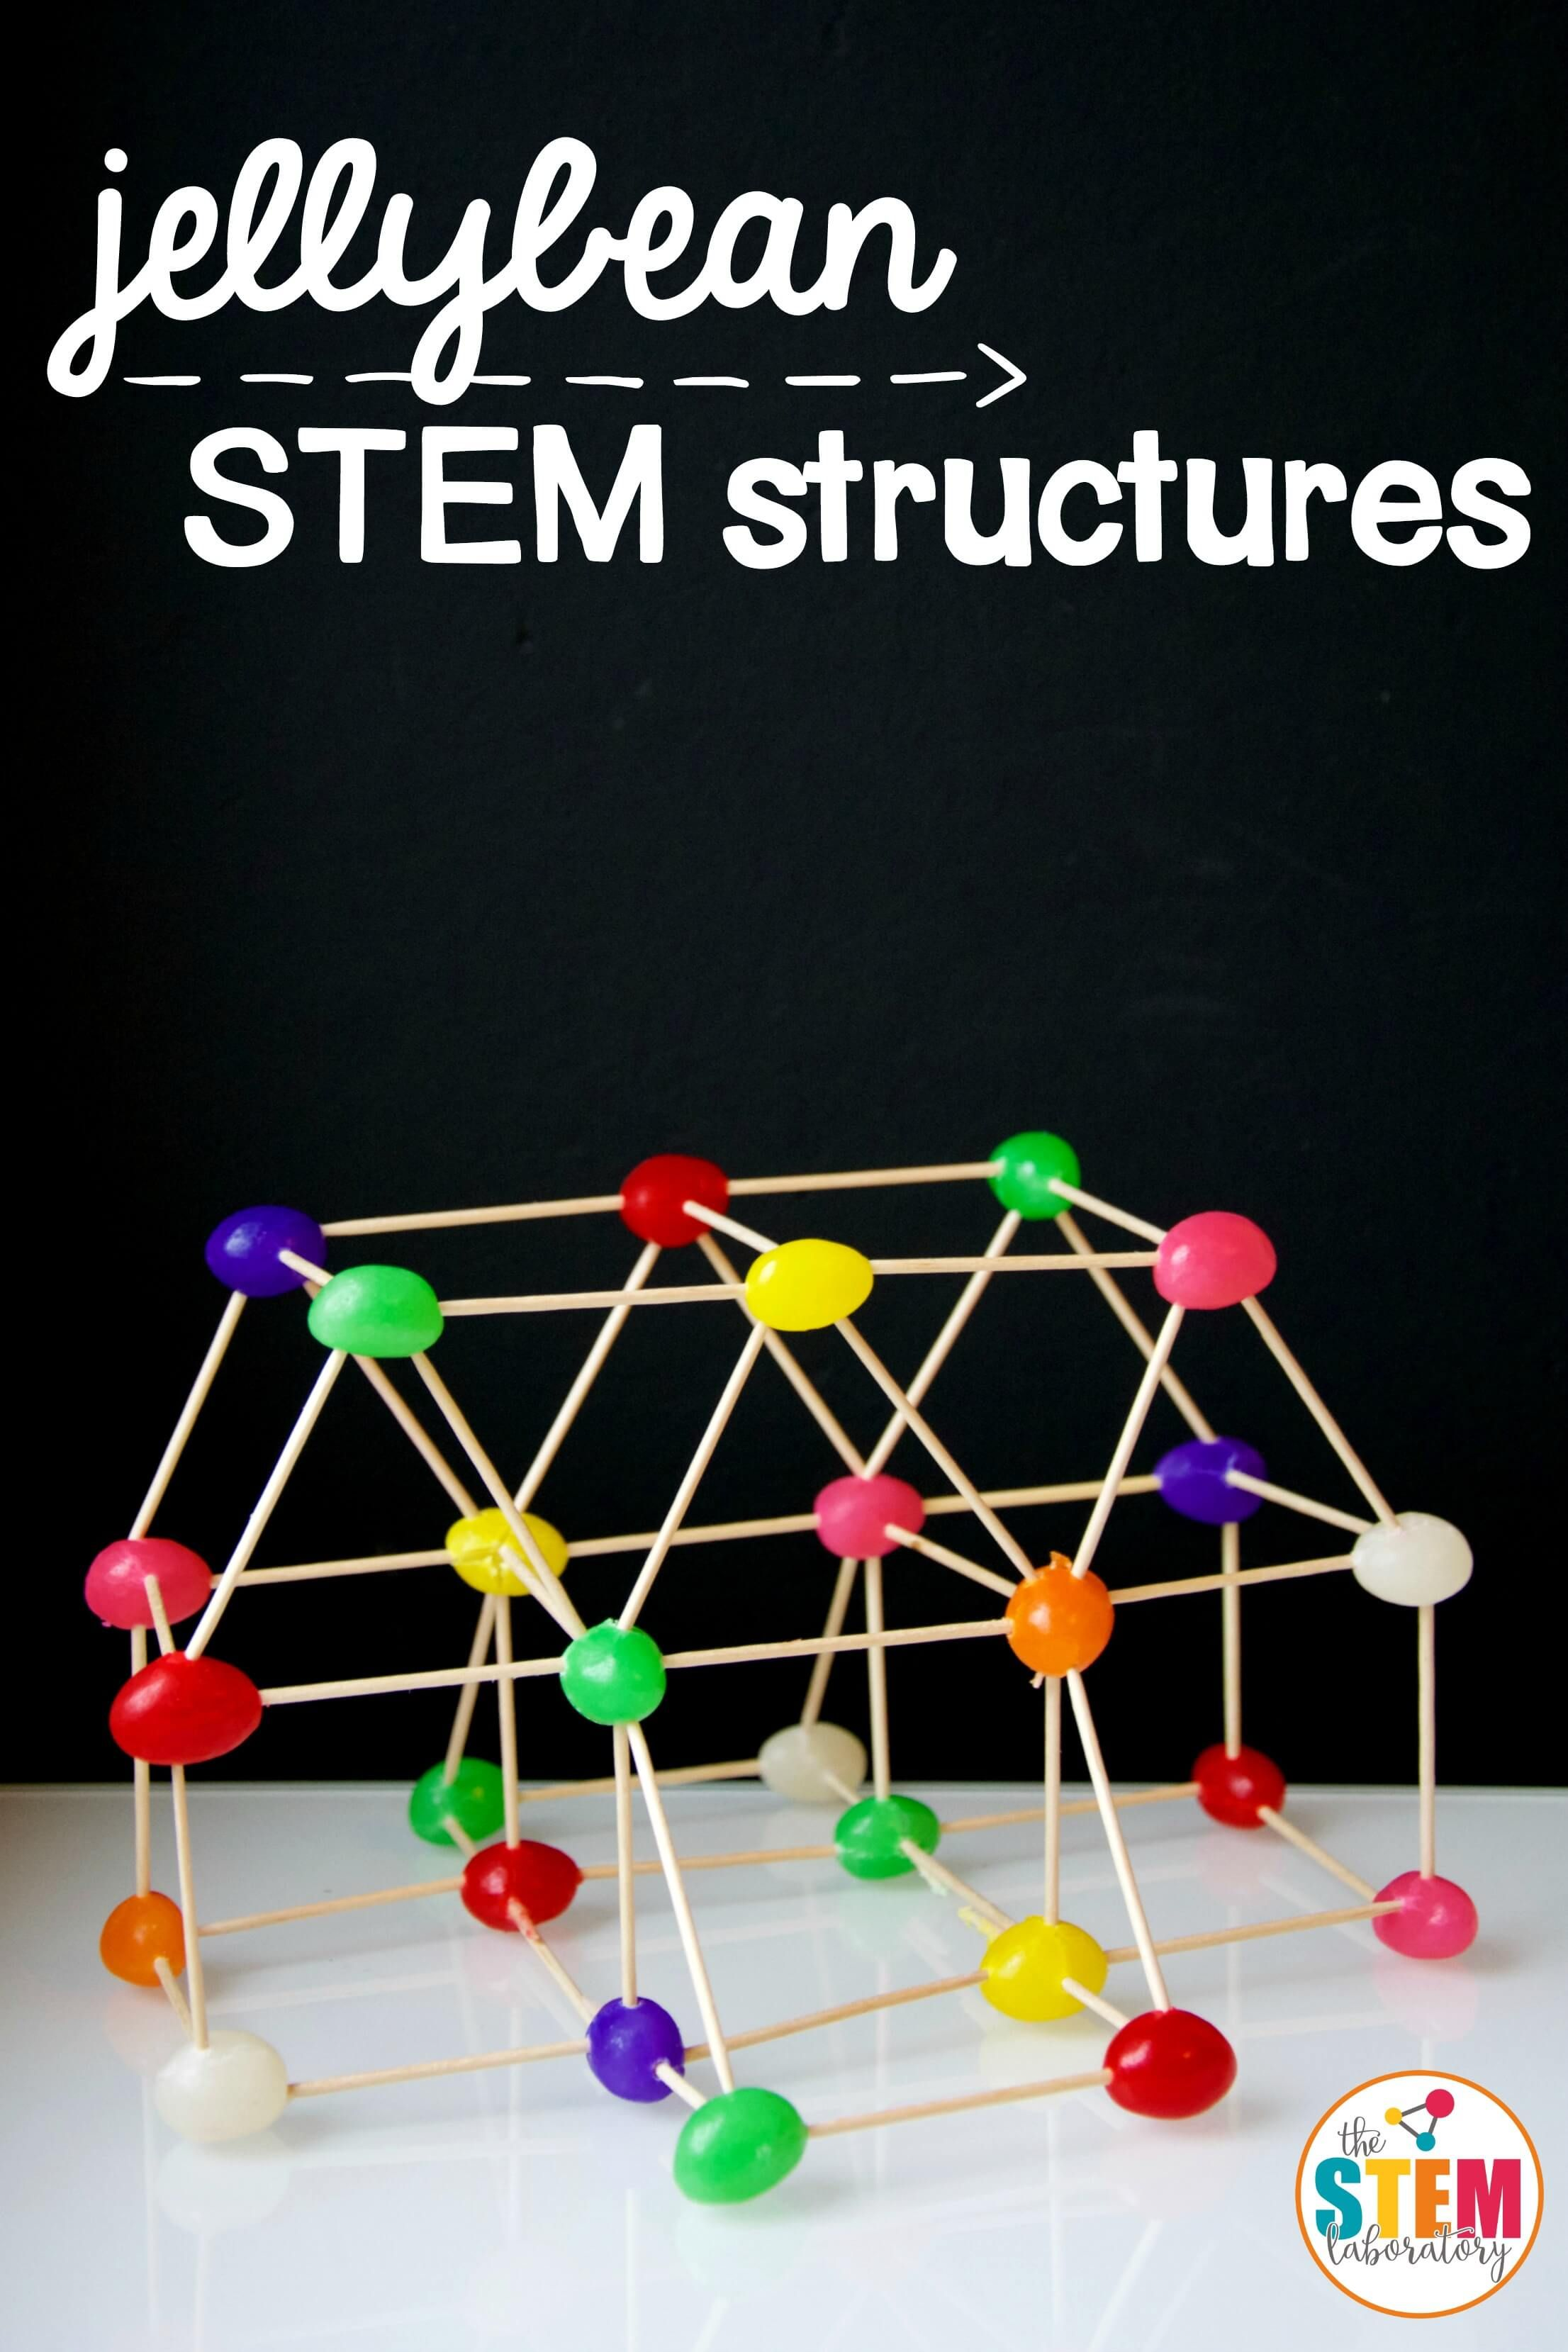 Jelly beans toothpicks = an afternoon of engineering fun My six